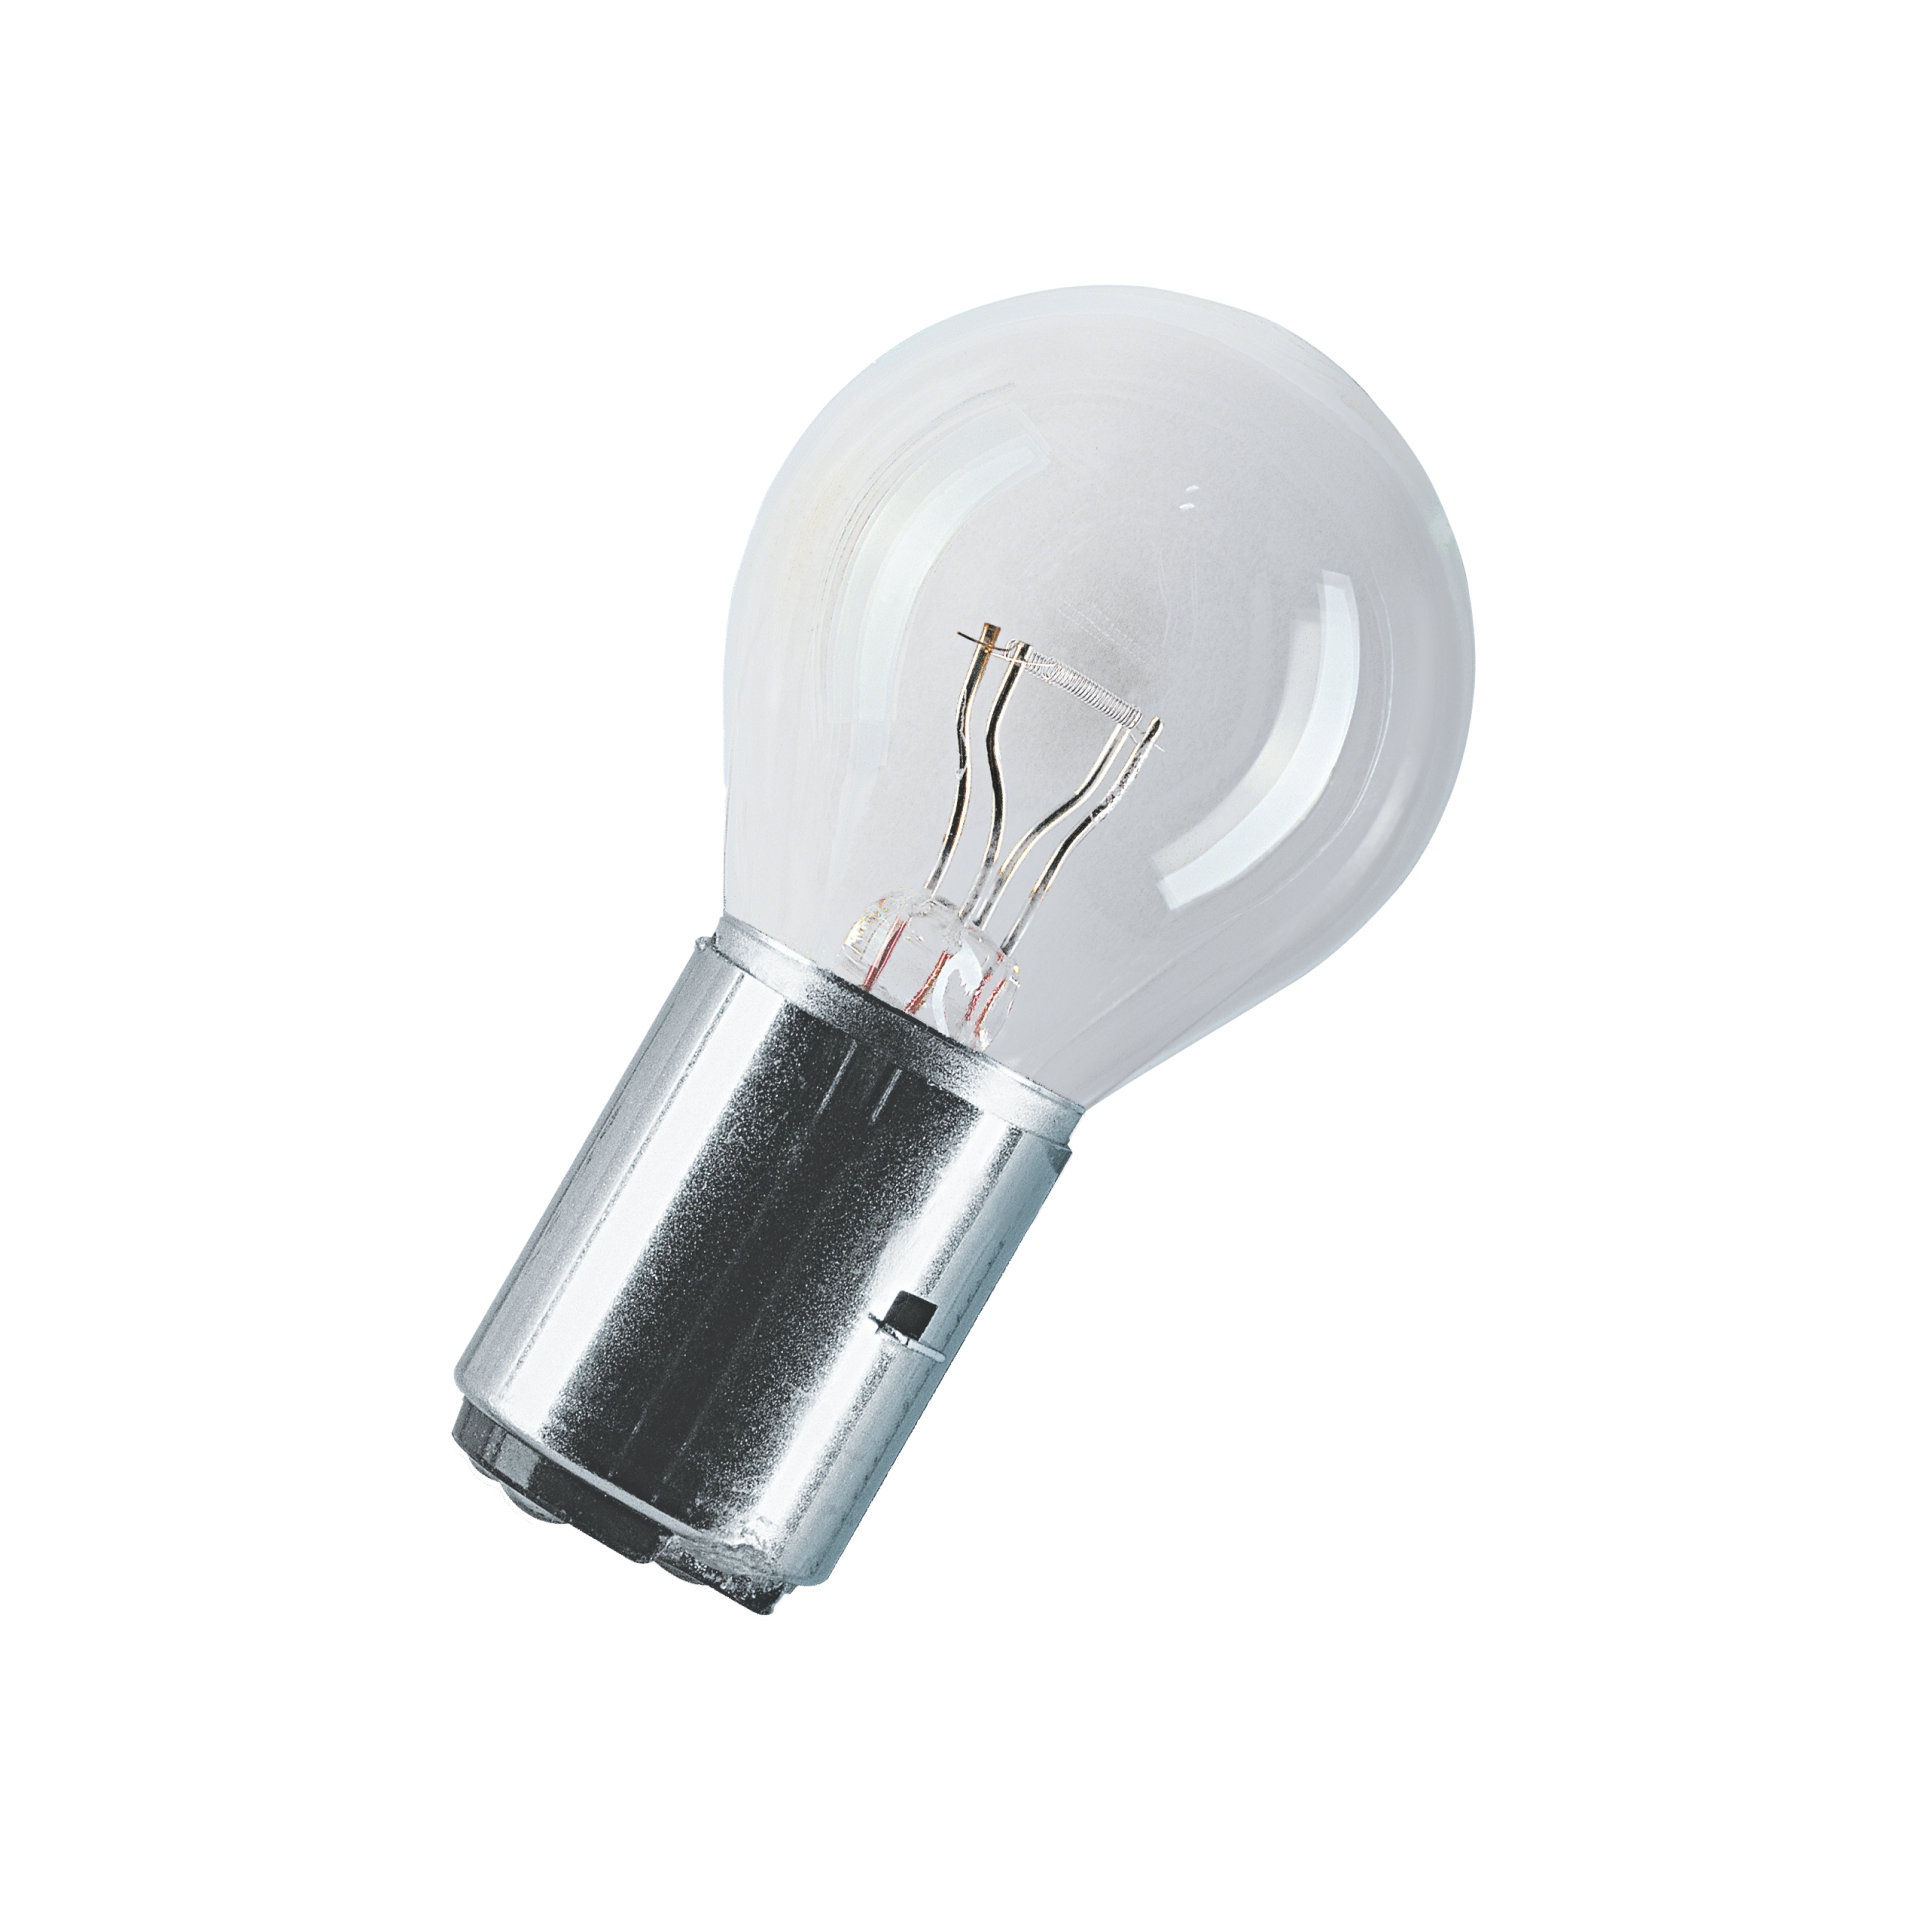 Low-voltage over-pressure dual-coil lamps, railway